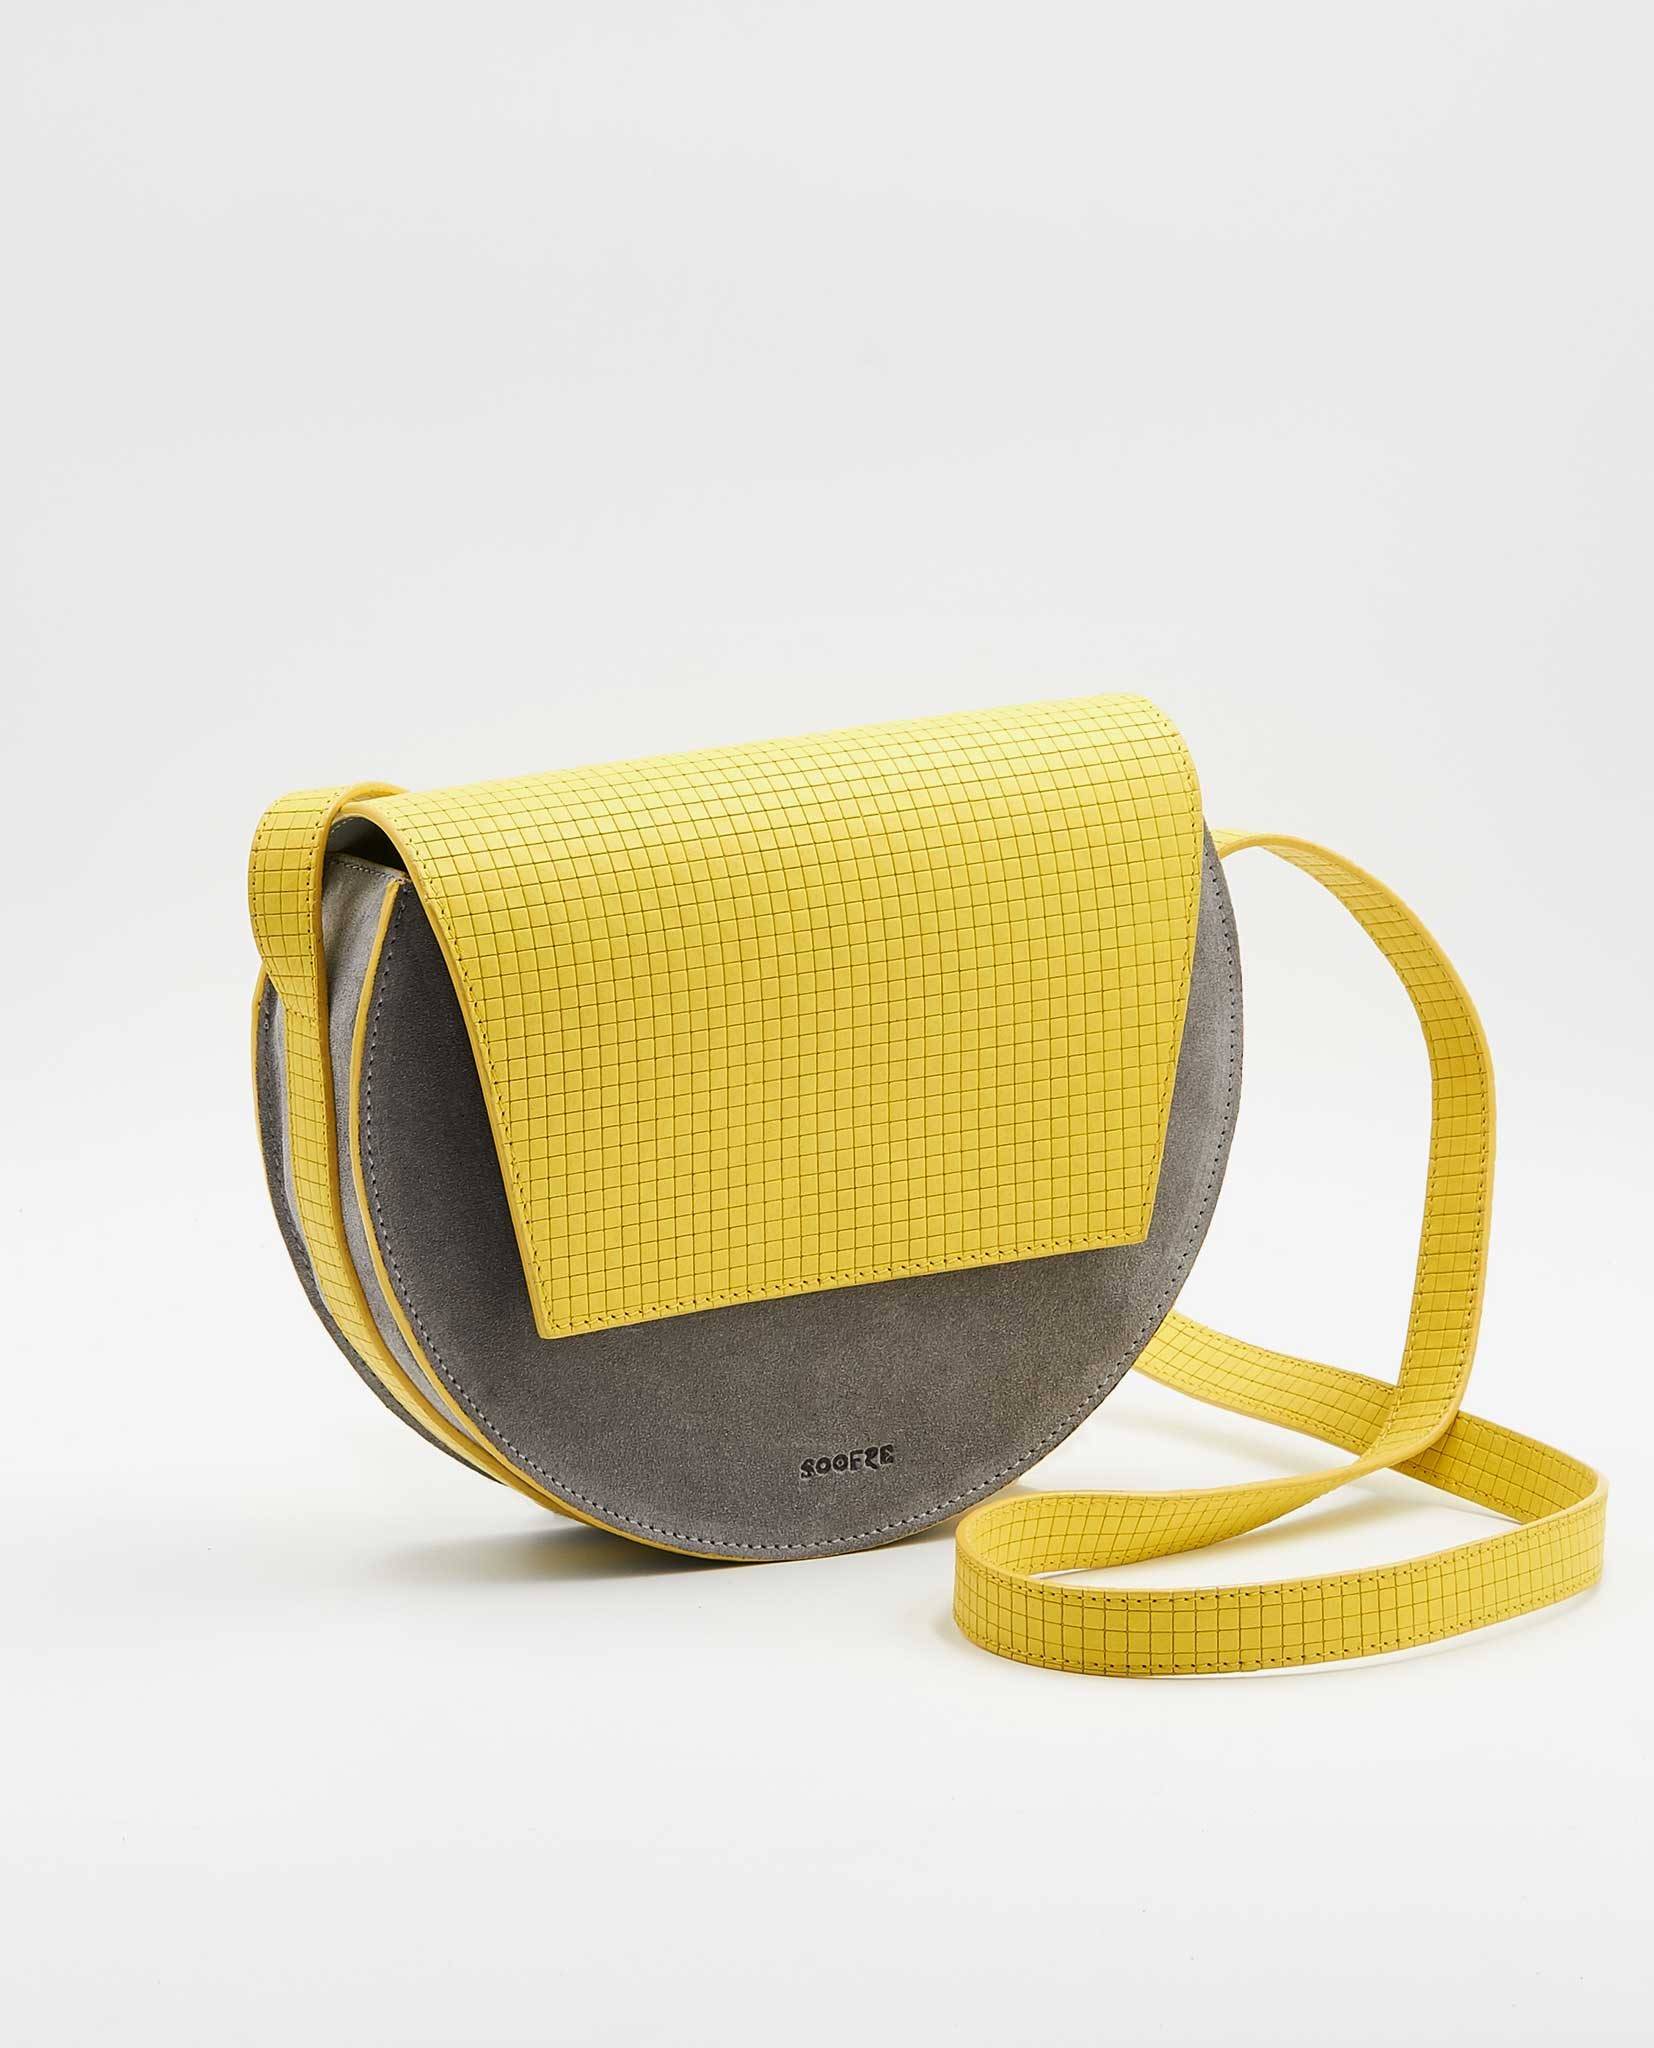 SOOFRE-Berlin-unique-Crossbody-Purse-squared-yellow-dove-grey-SIDES